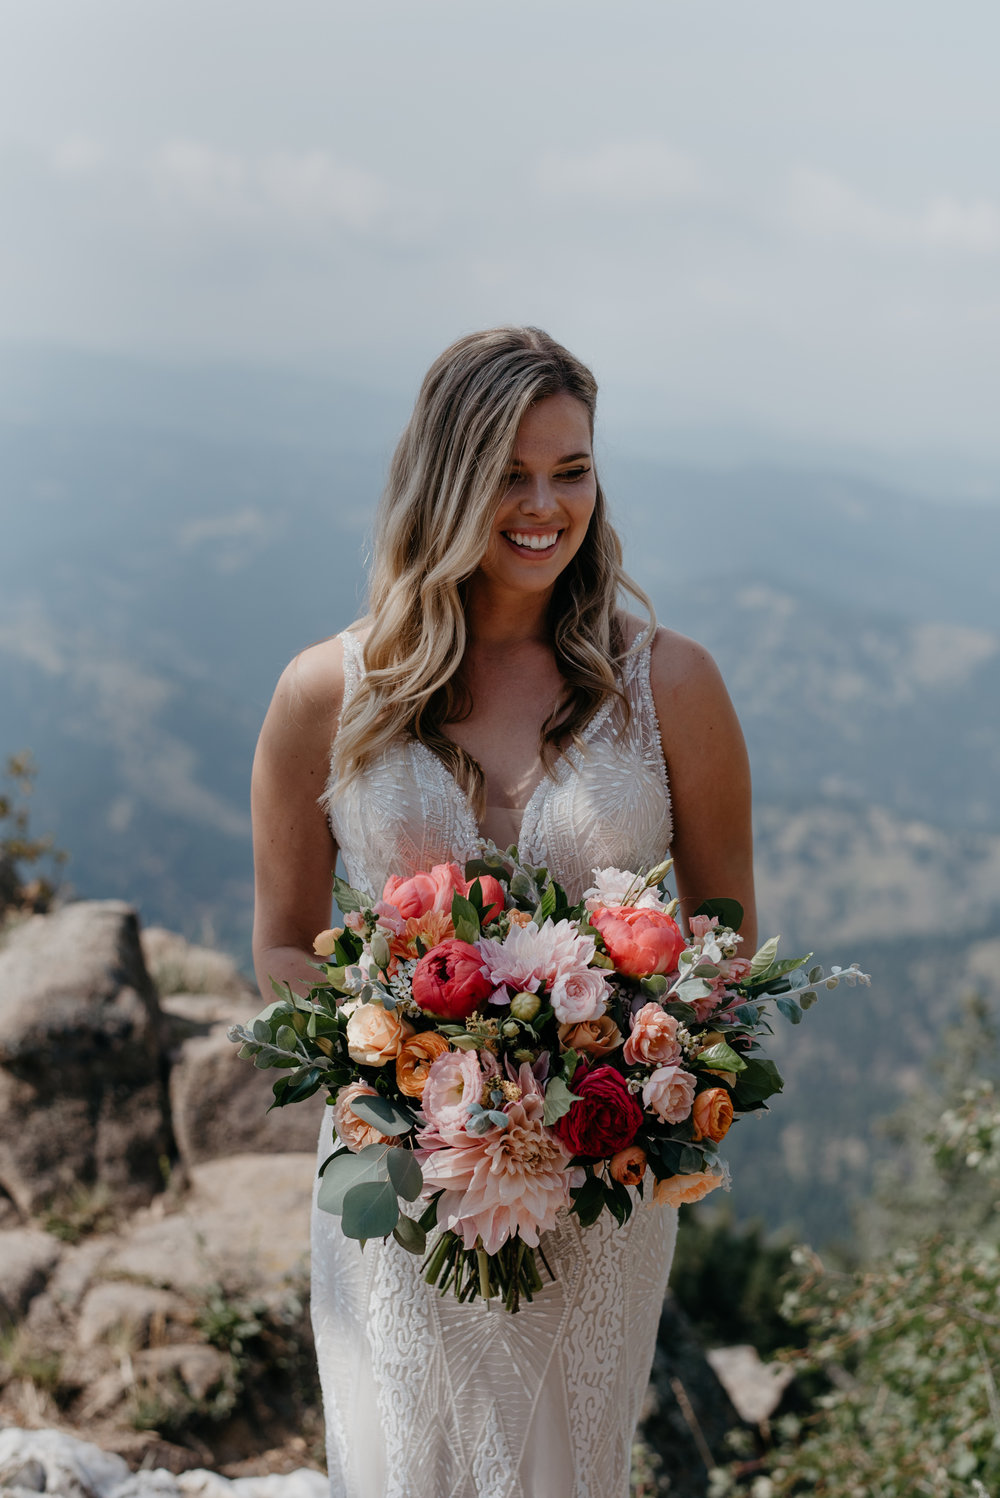 Bridal portraits at Lost Gulch elopement in Boulder, Colorado. Colorado mountain wedding photographer.